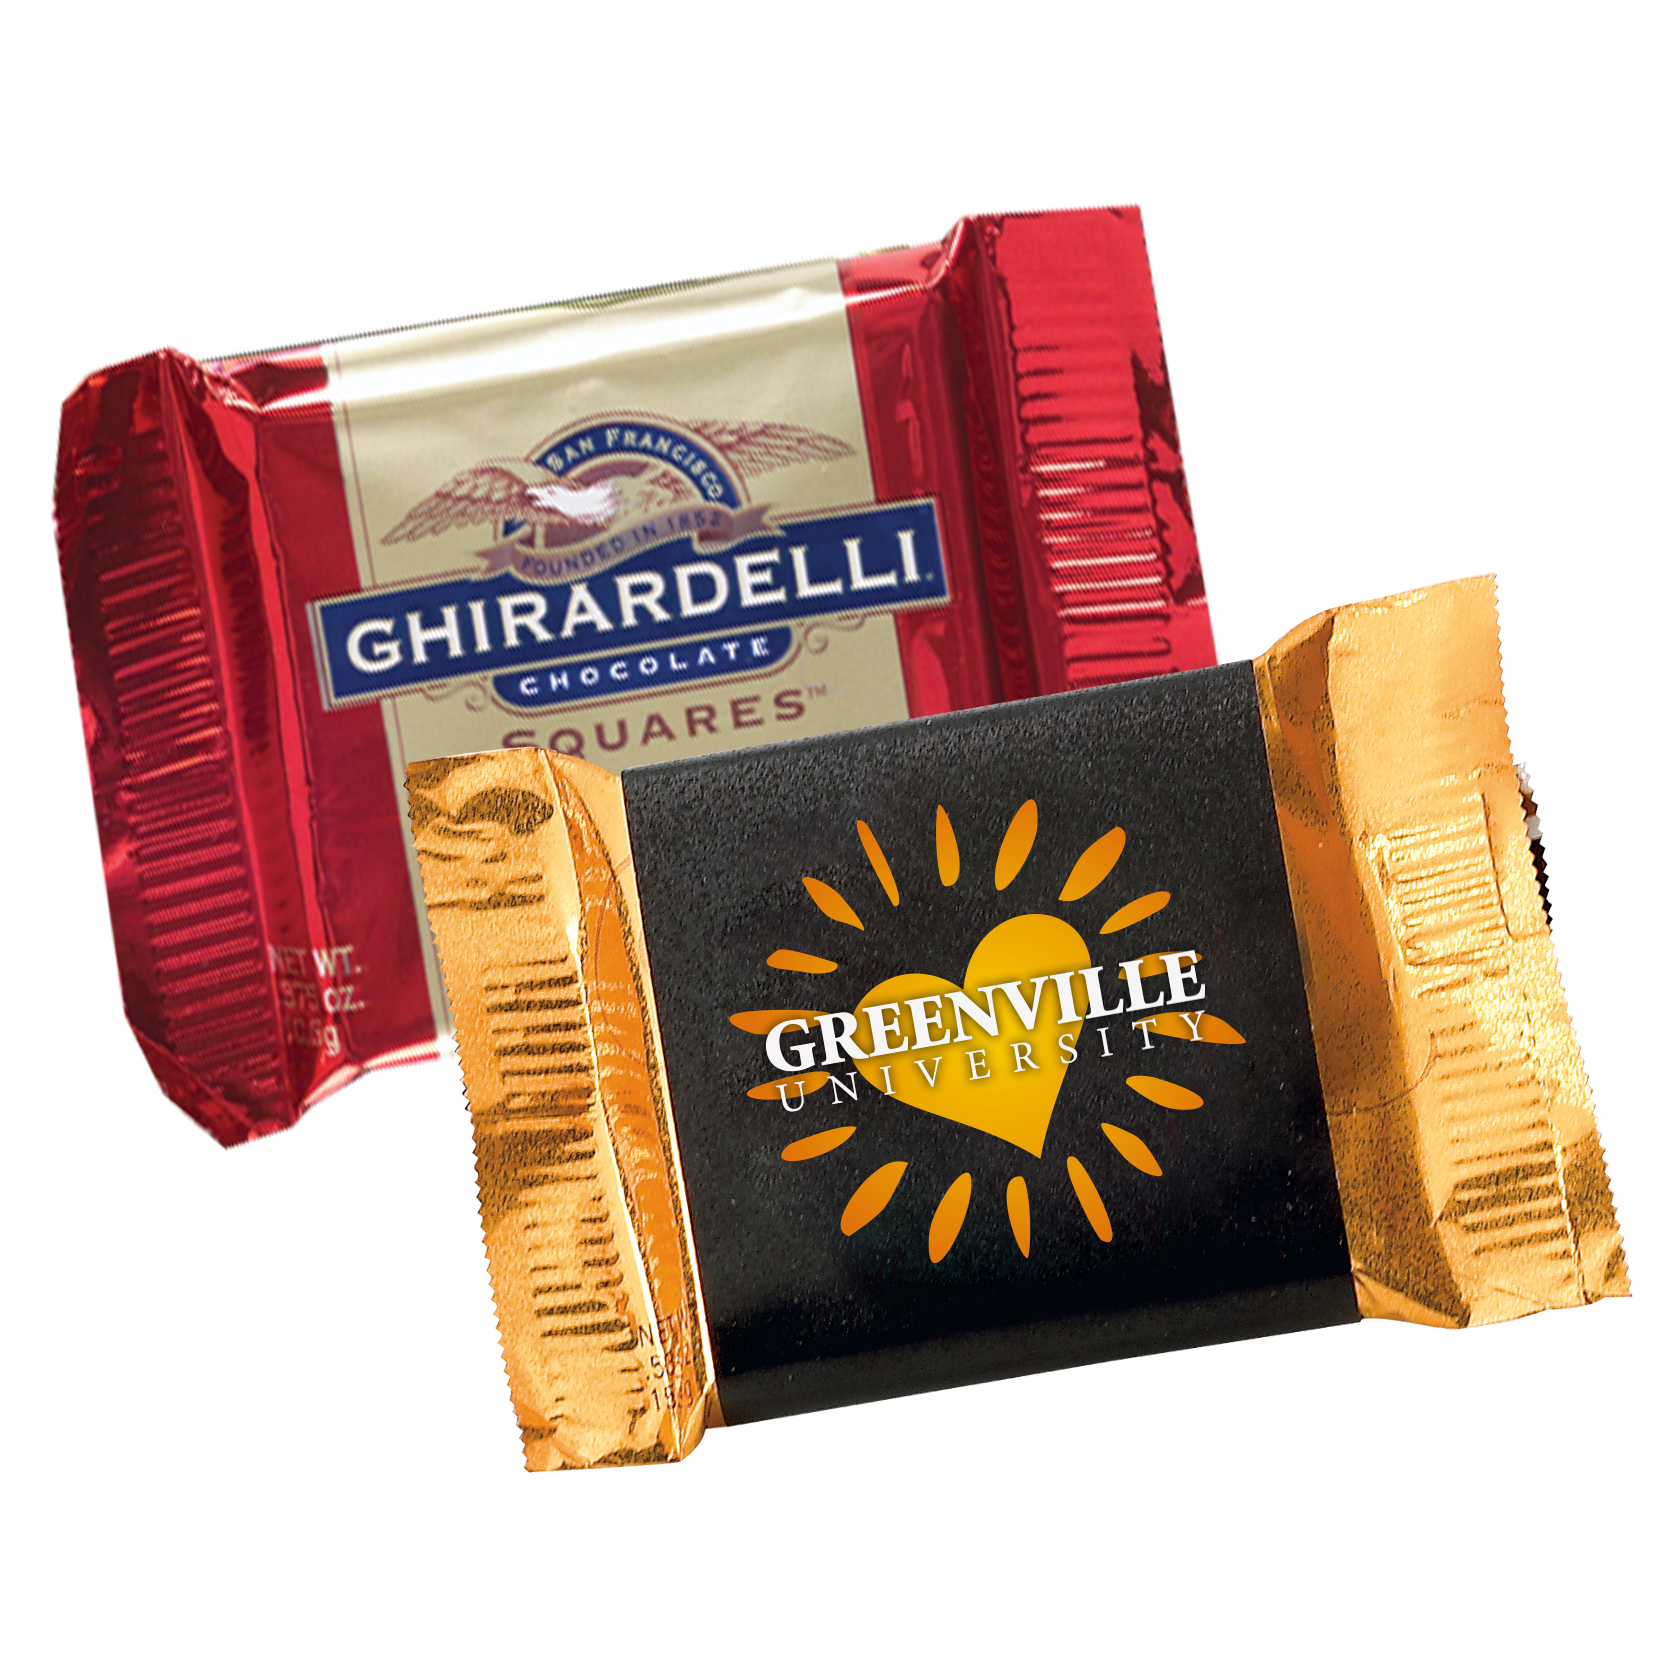 Ghiradelli Square, Custom Wrapper